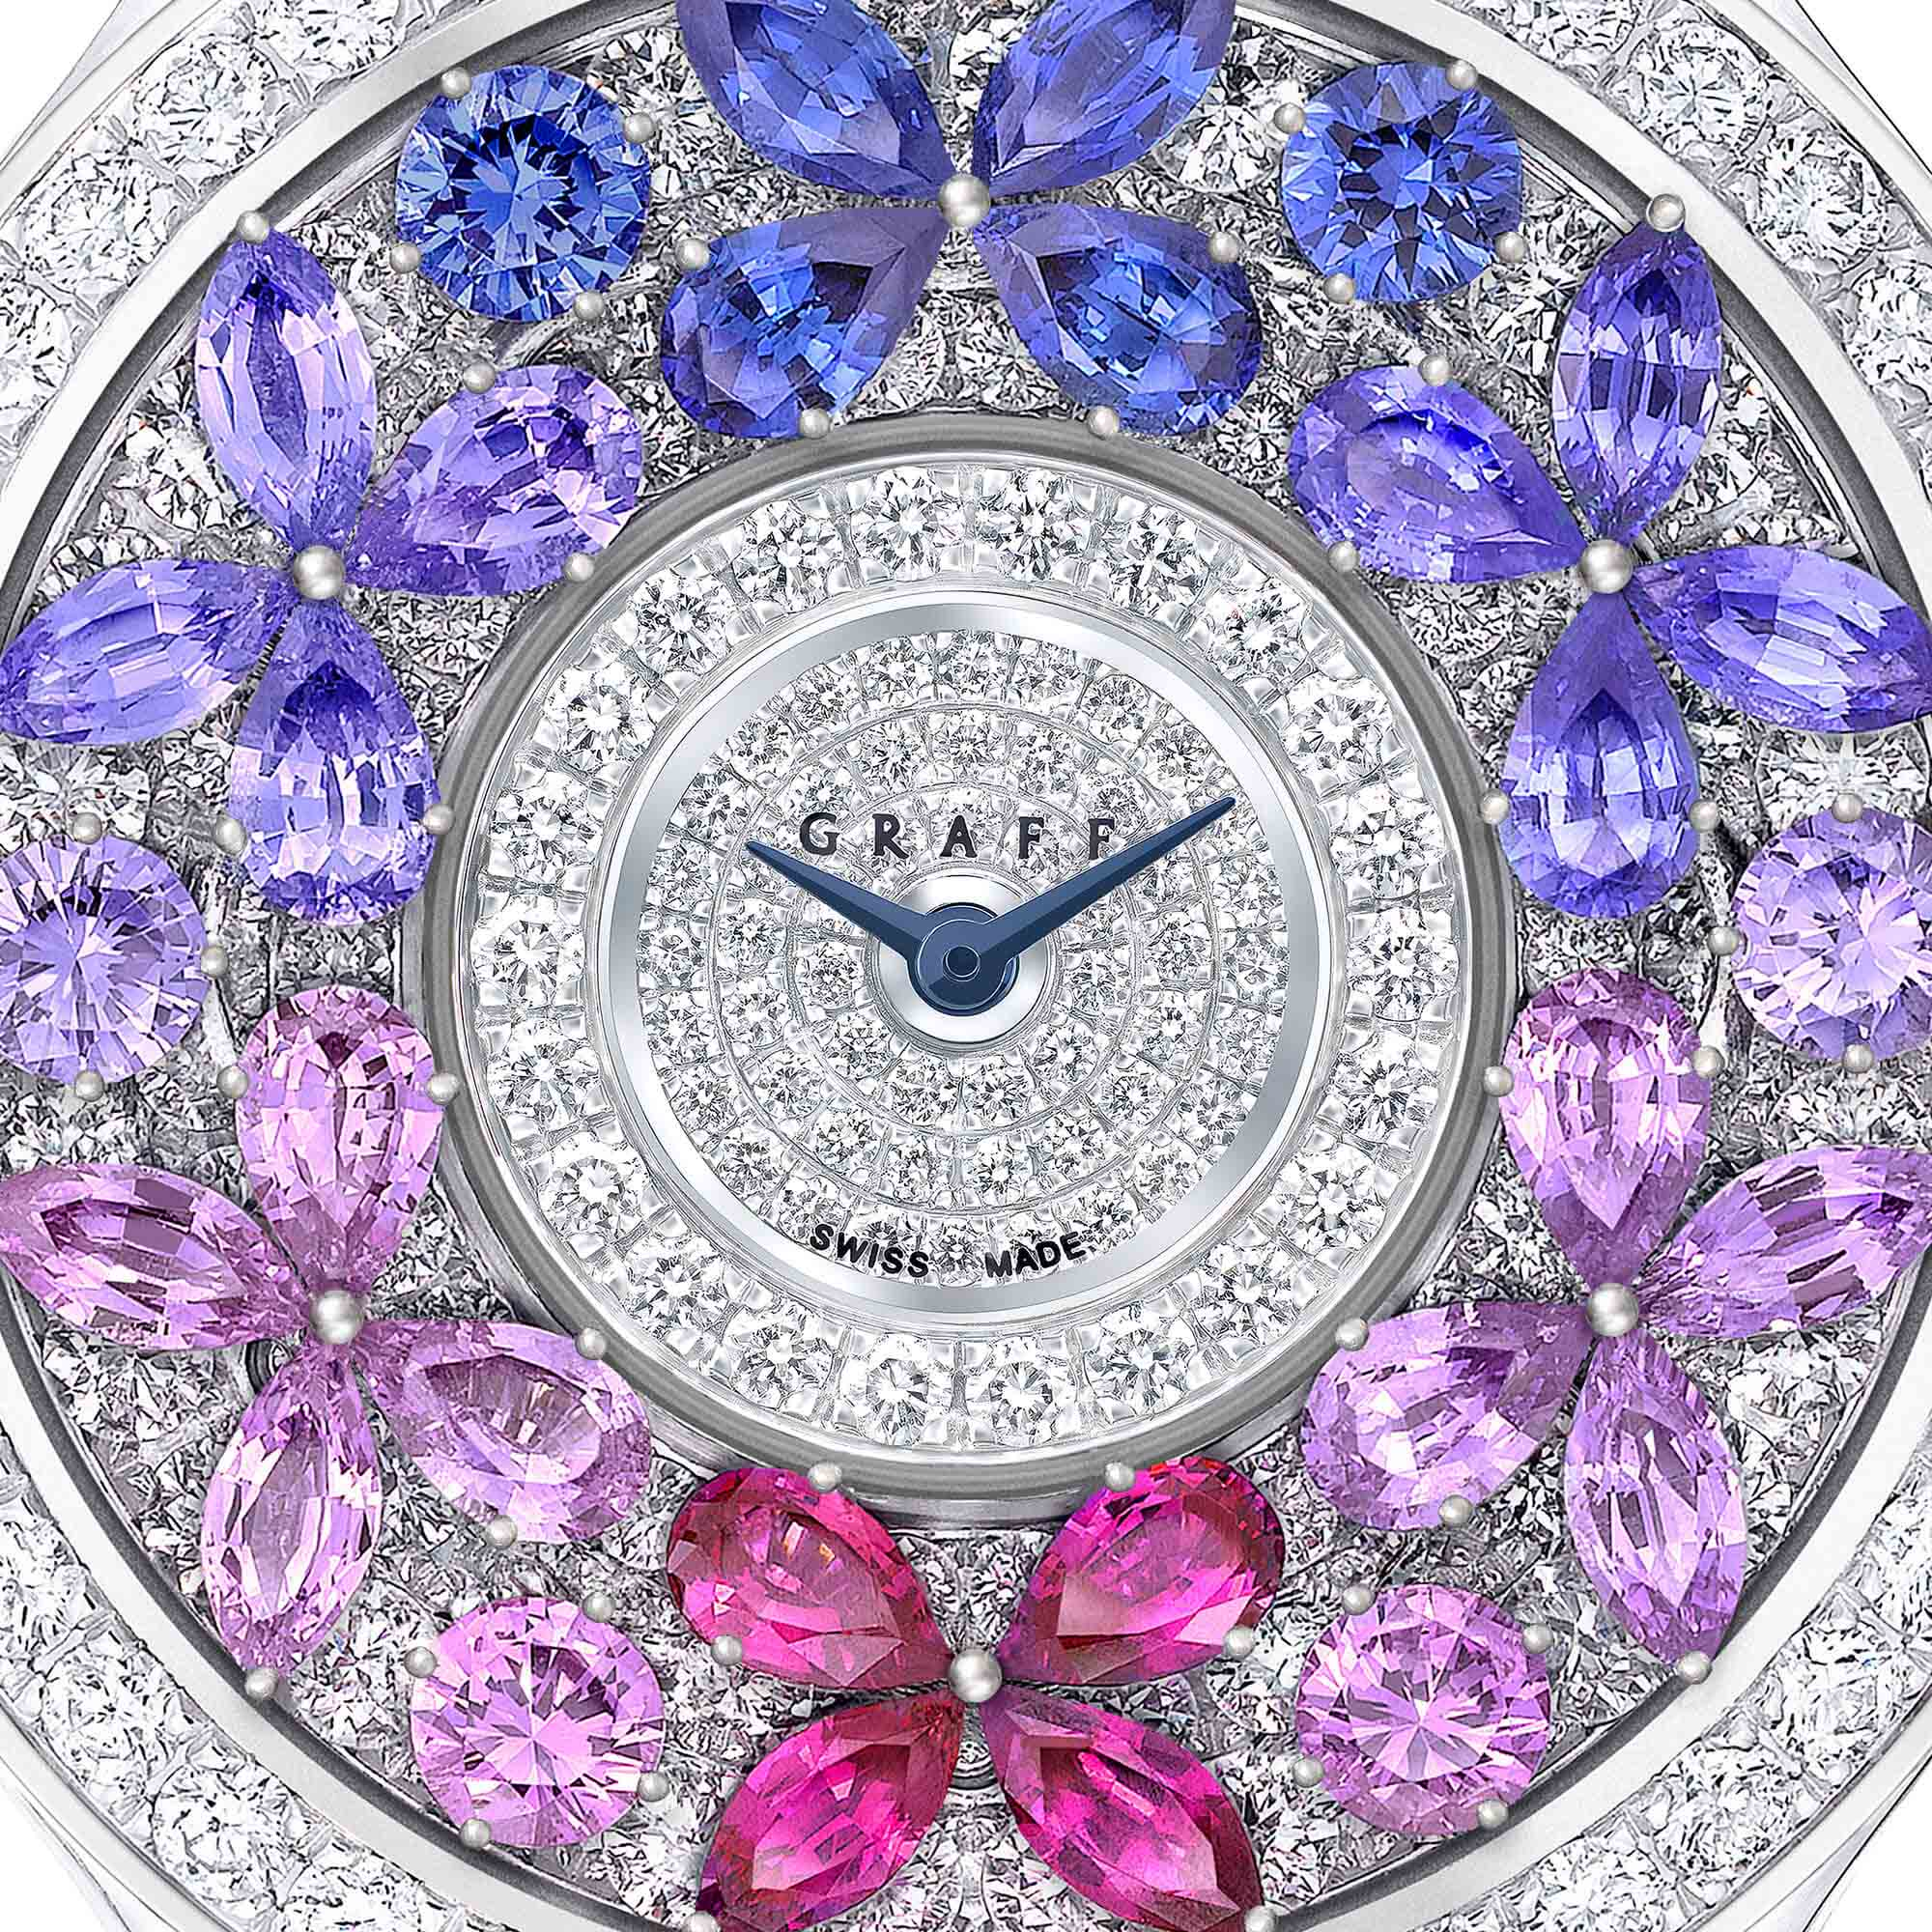 Close up of a Graff Rainbow Sapphire and diamonds butterfly watch from the Graff Butterfly Ladies' Watch collection.